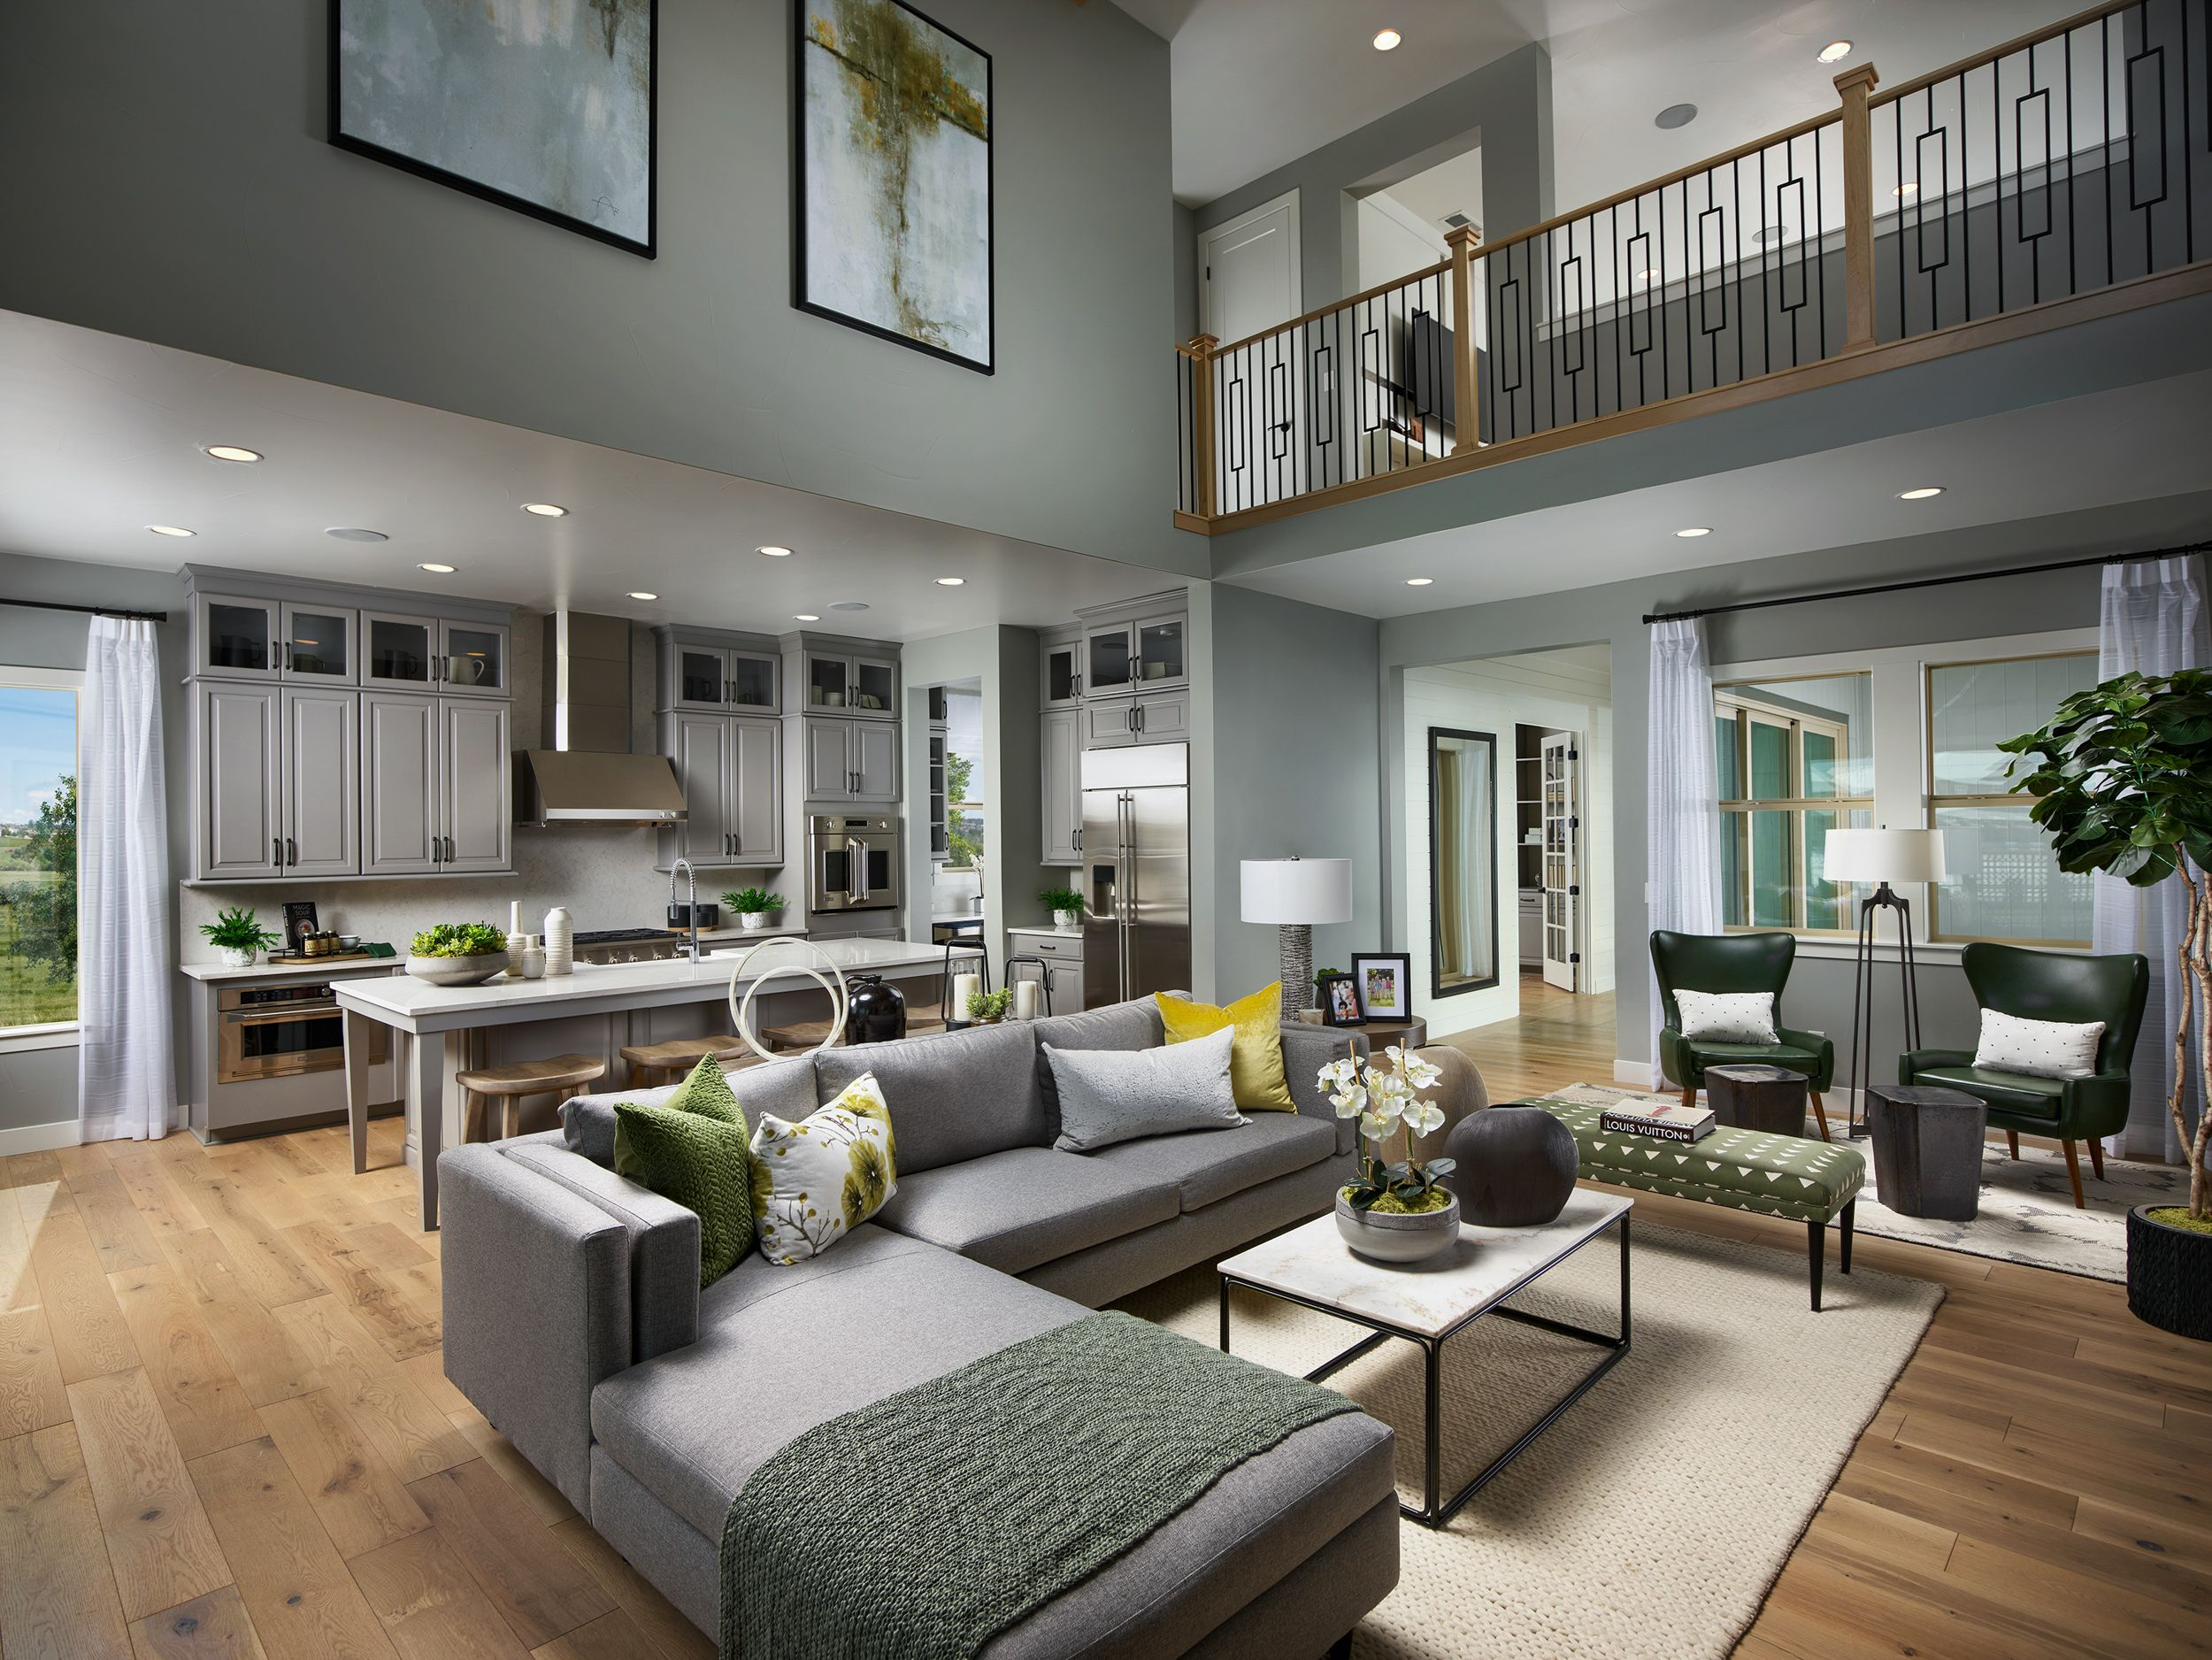 Graceful Interiors Await In This Denver Dreamhome Instahome